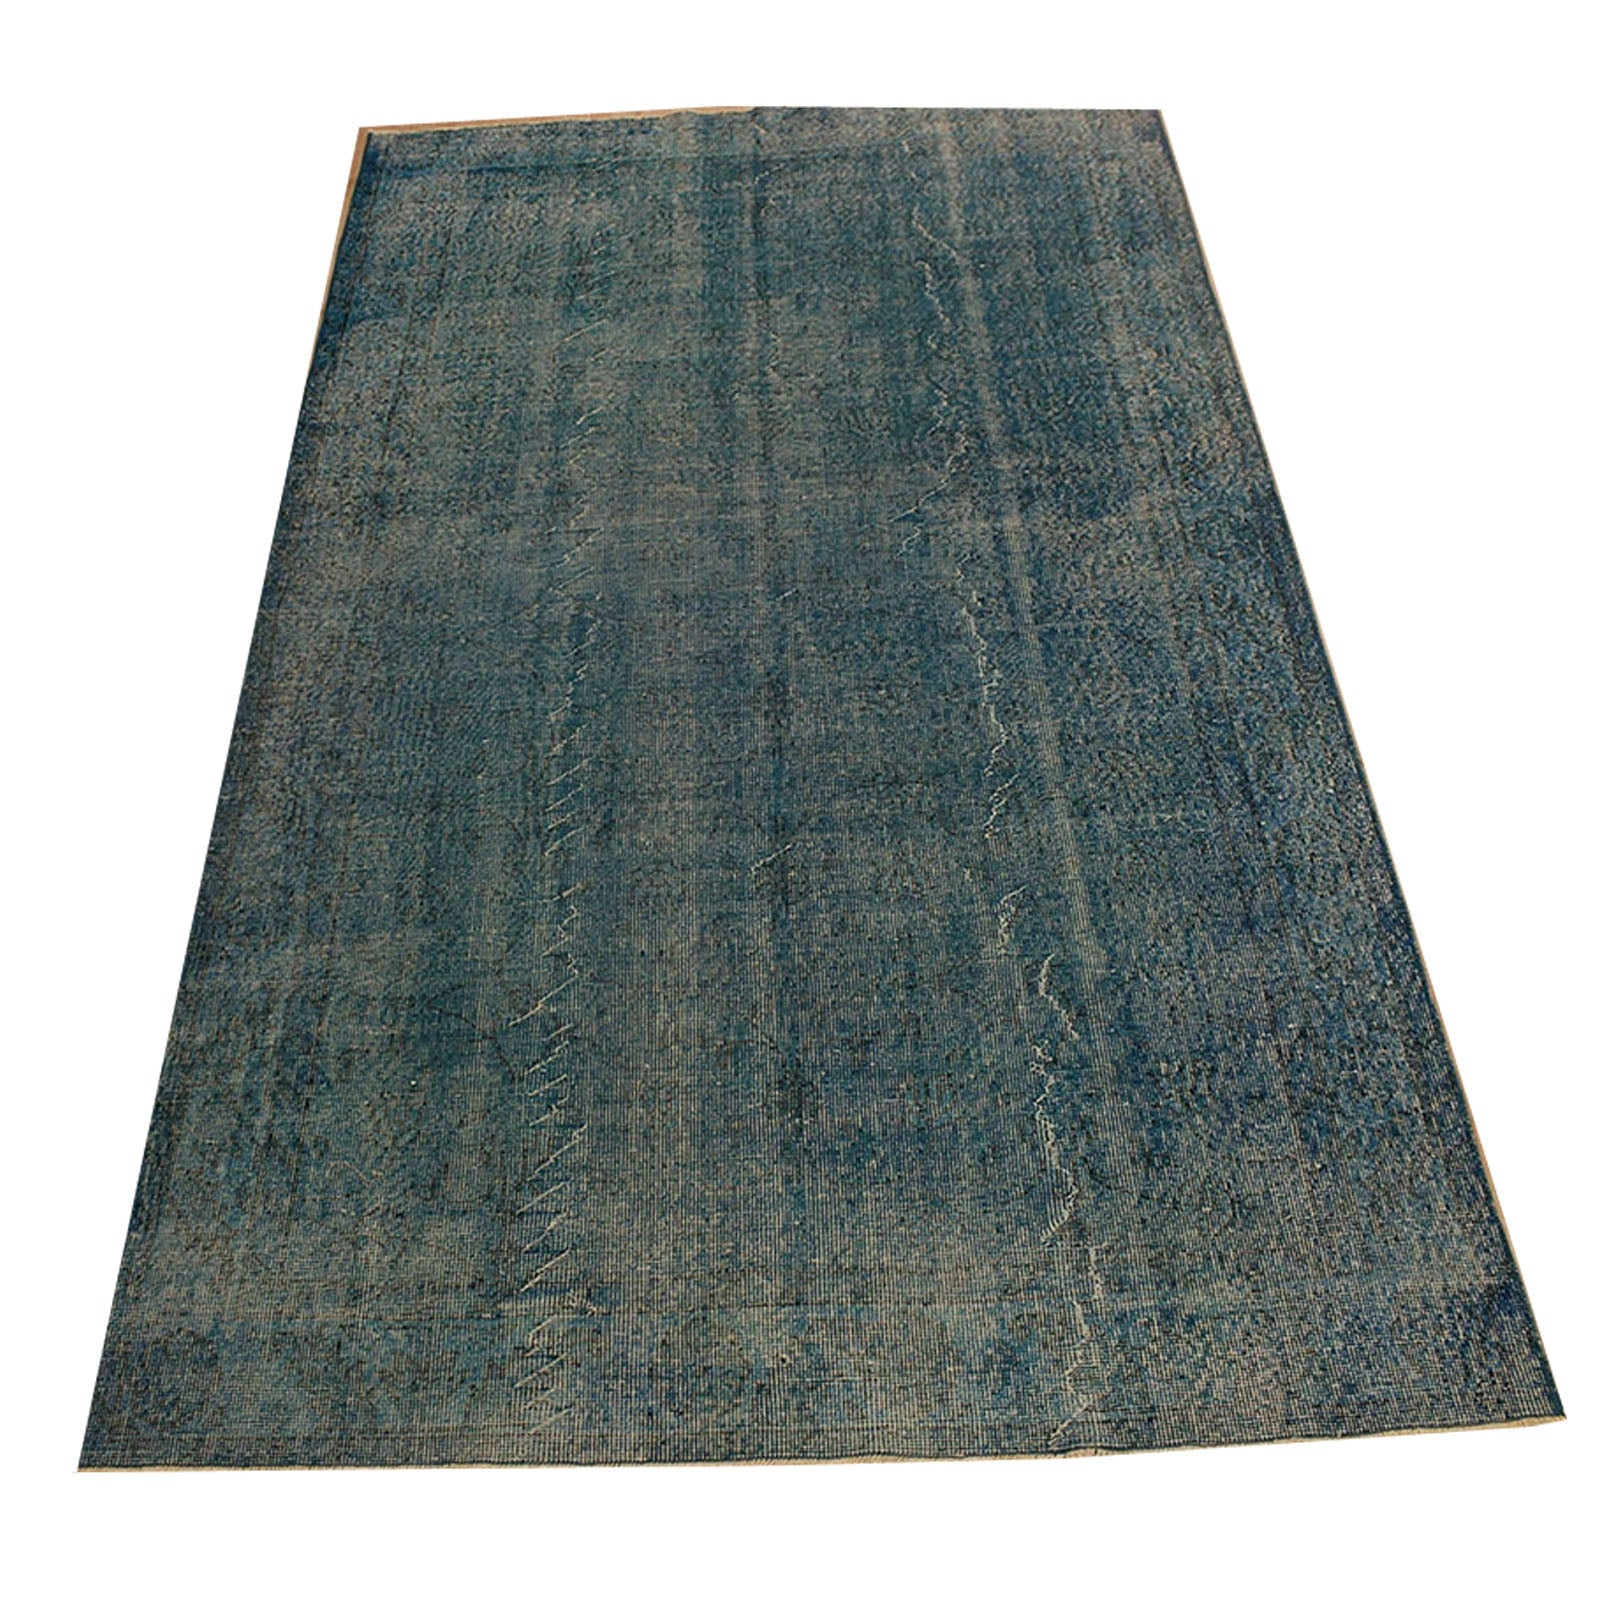 Hali 152X257 CM Bursa Handmade over dyed rug 2417